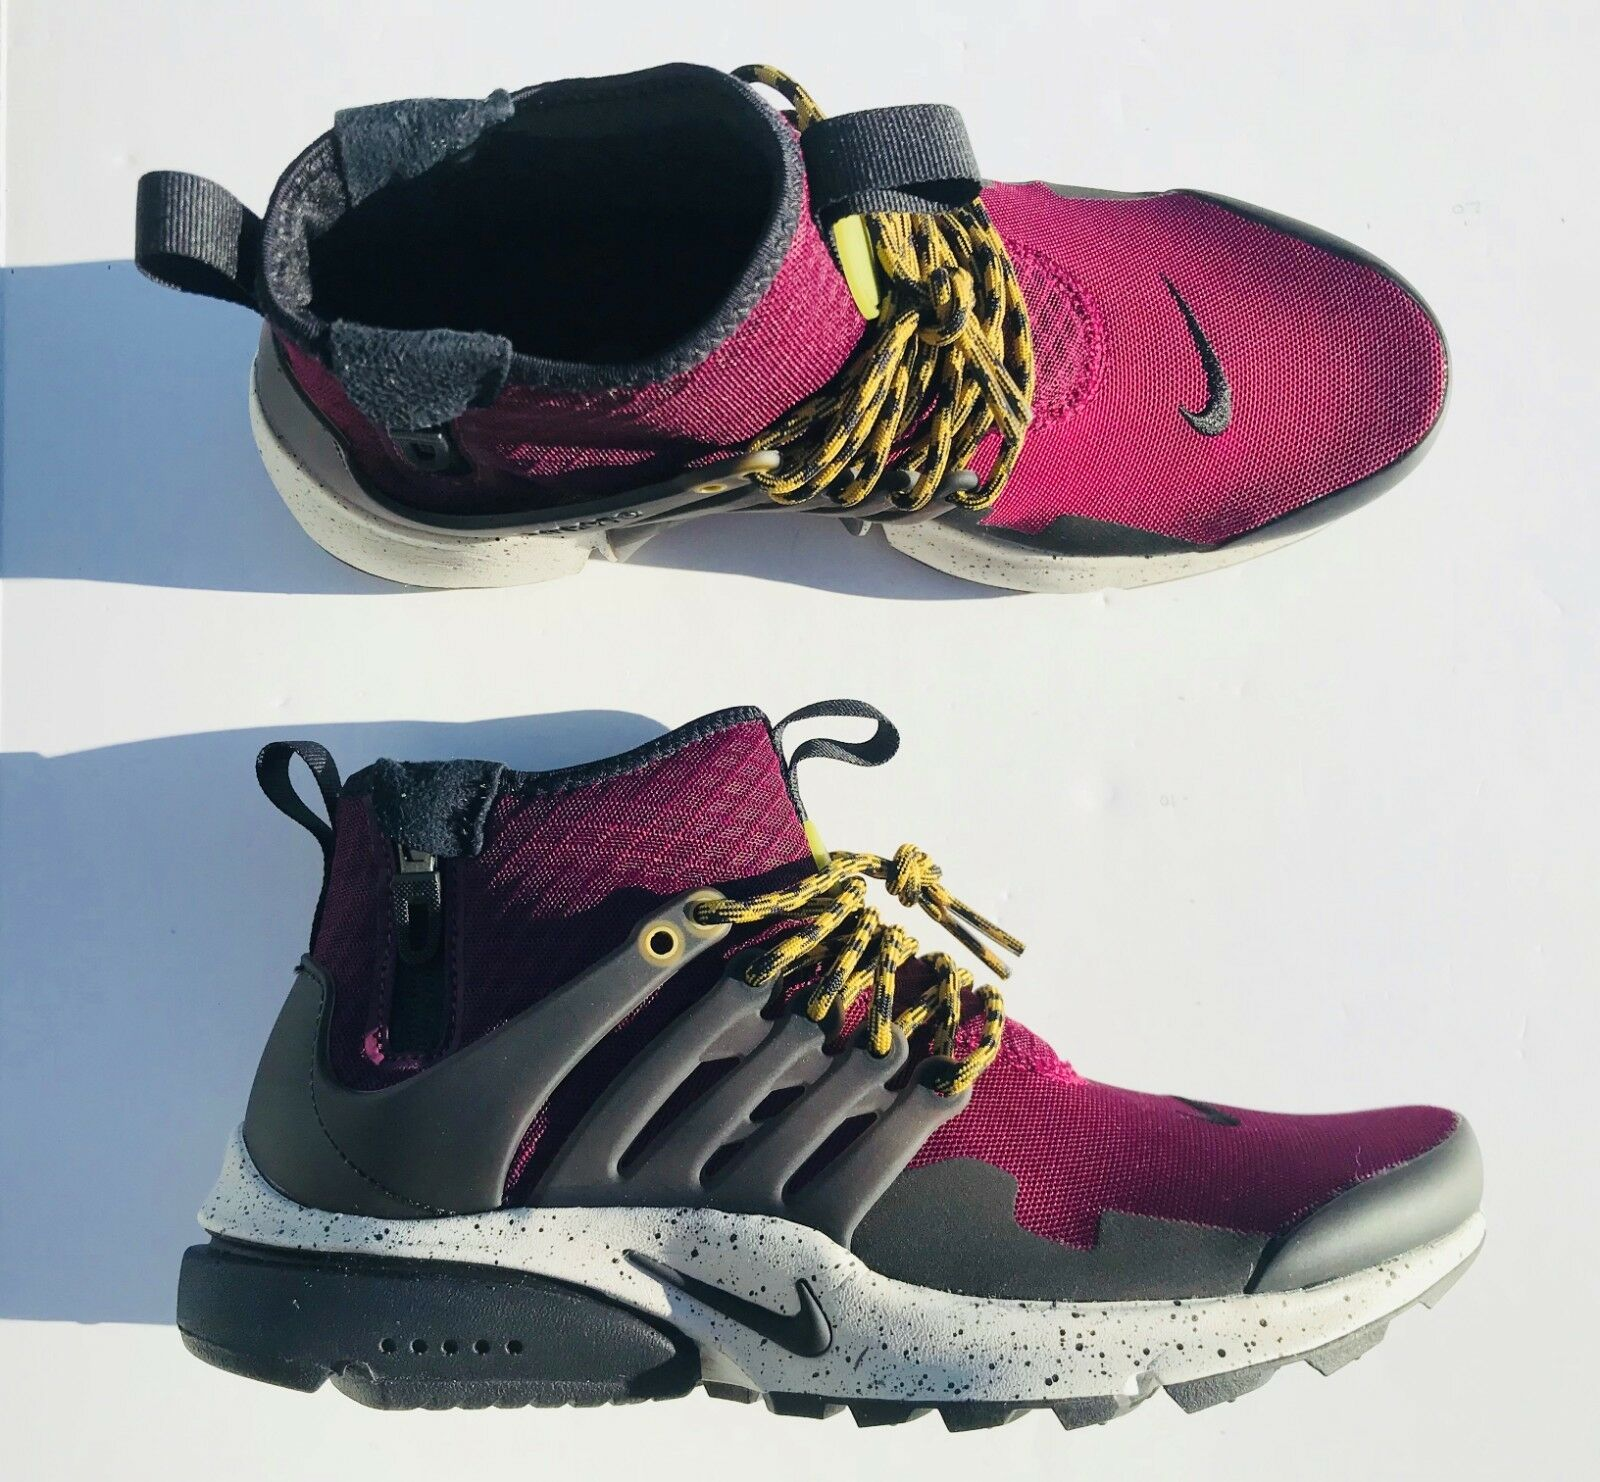 Nike Air Presto Mid Utility shoes 859524-600 Bordeaux Bordeaux Bordeaux Black Men's Size 10 edd362